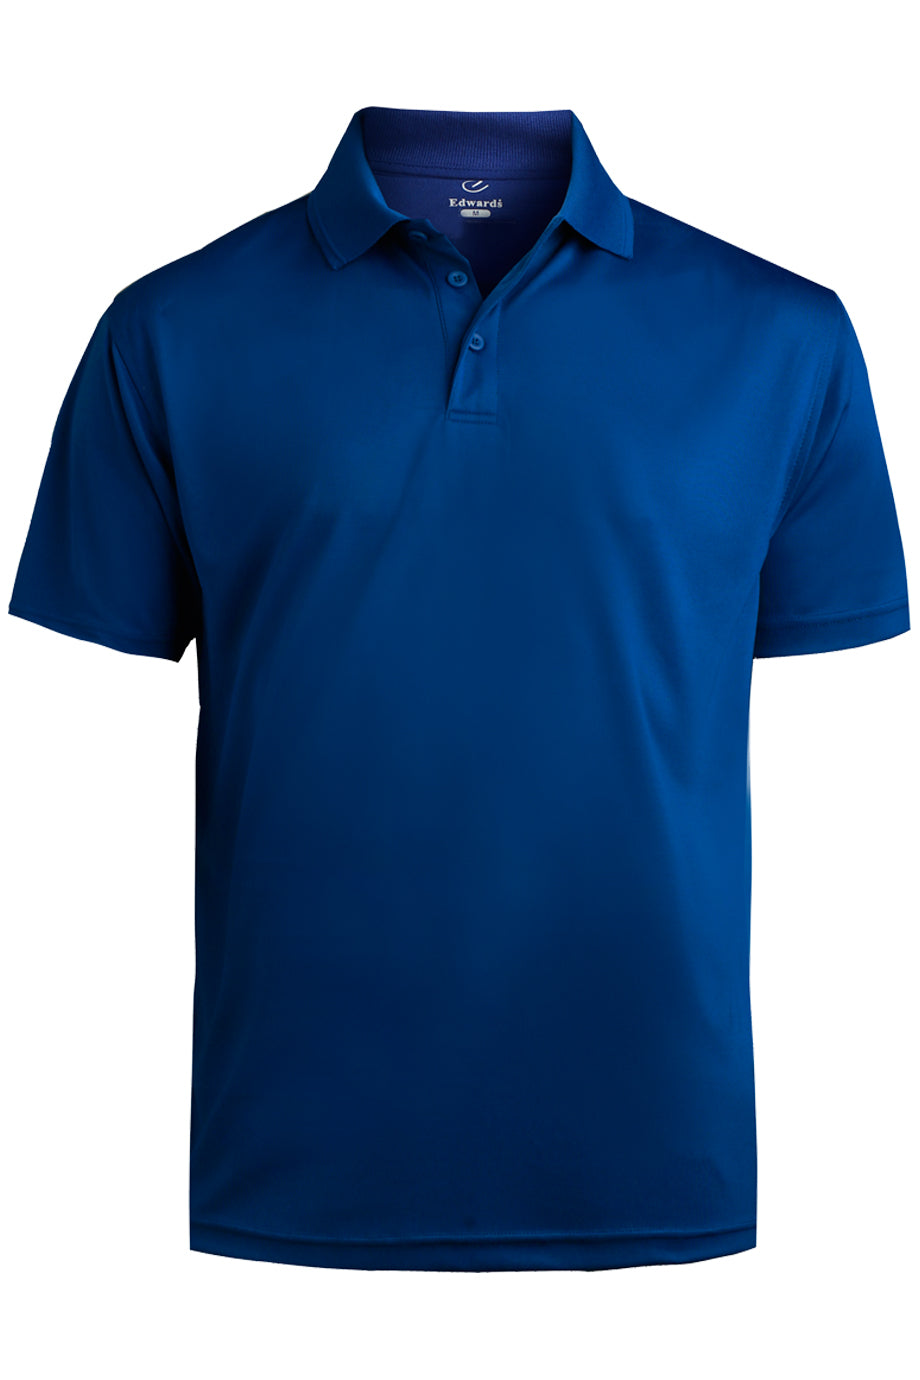 Royal Edwards Mens Performance Flat-Knit Short Sleeve Polo